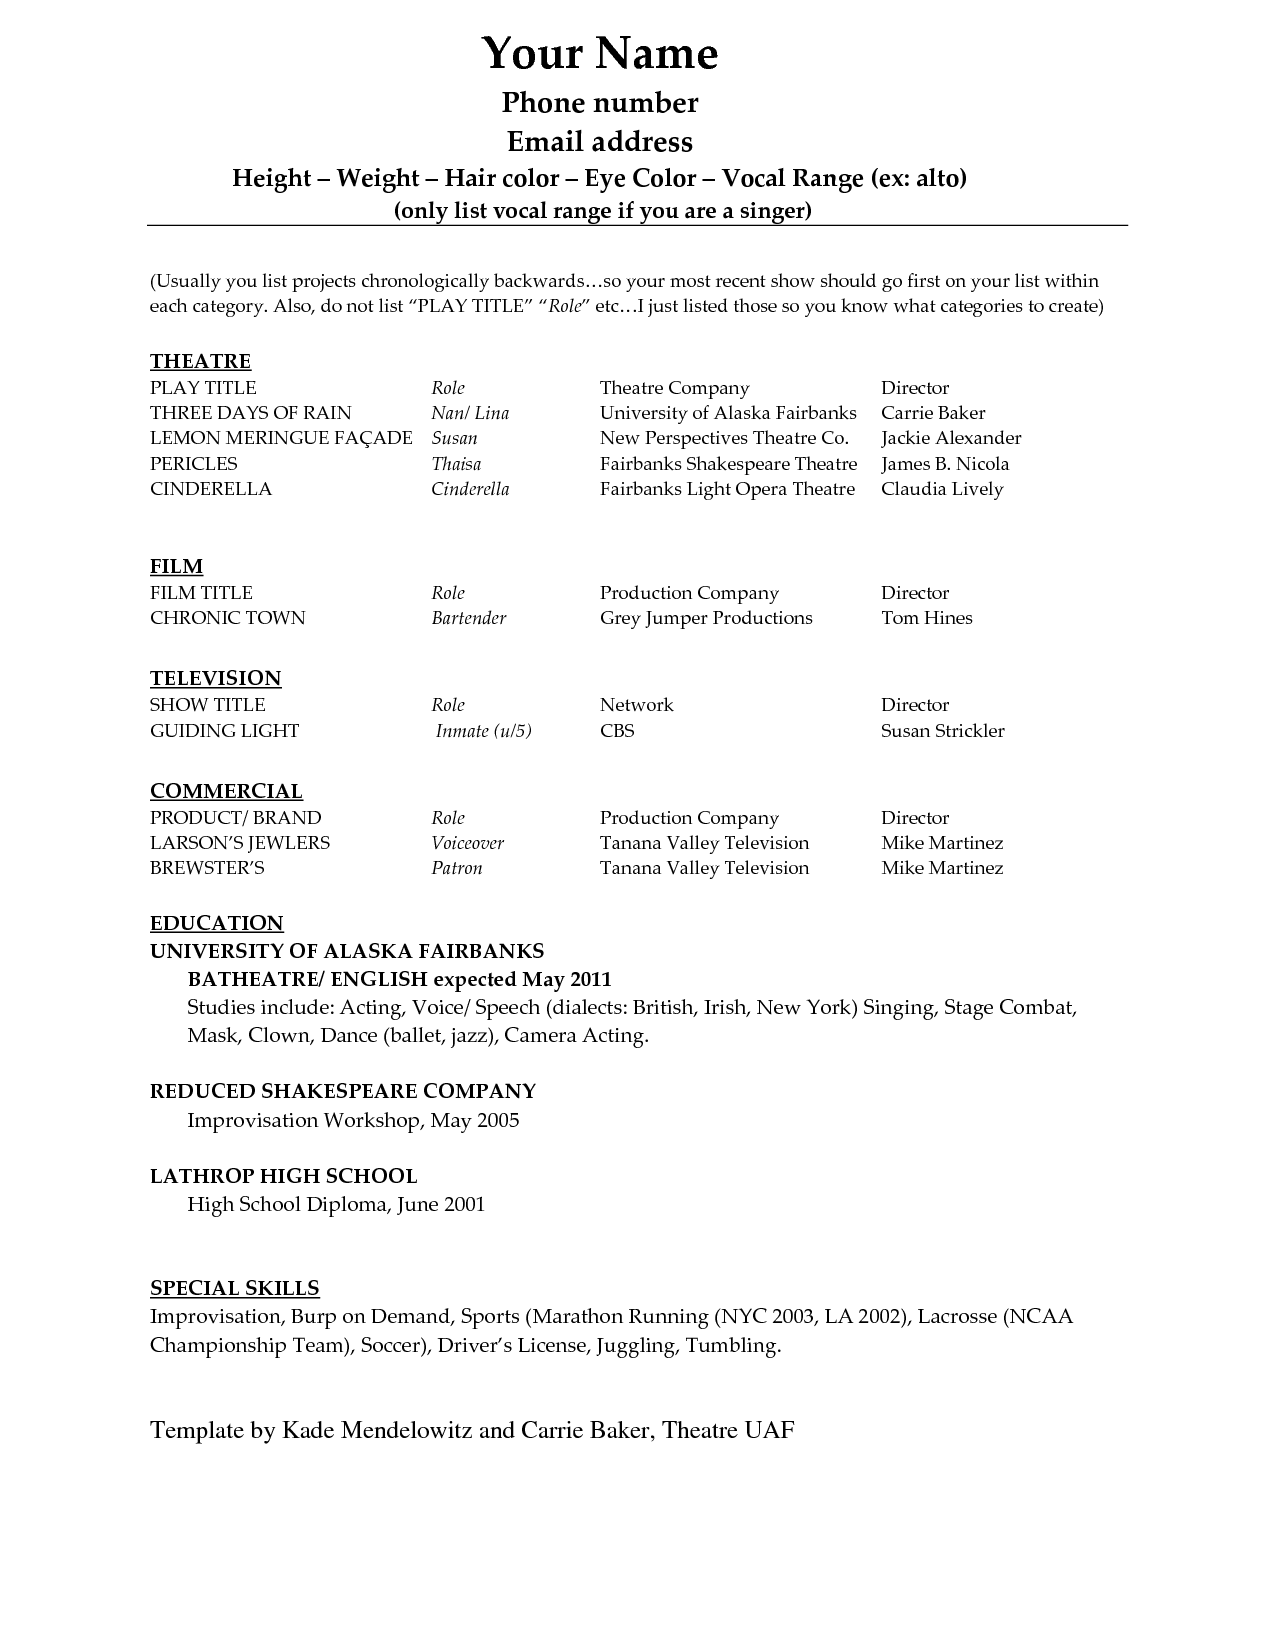 Acting Resume Template Download Free - http://www.resumecareer.info ...